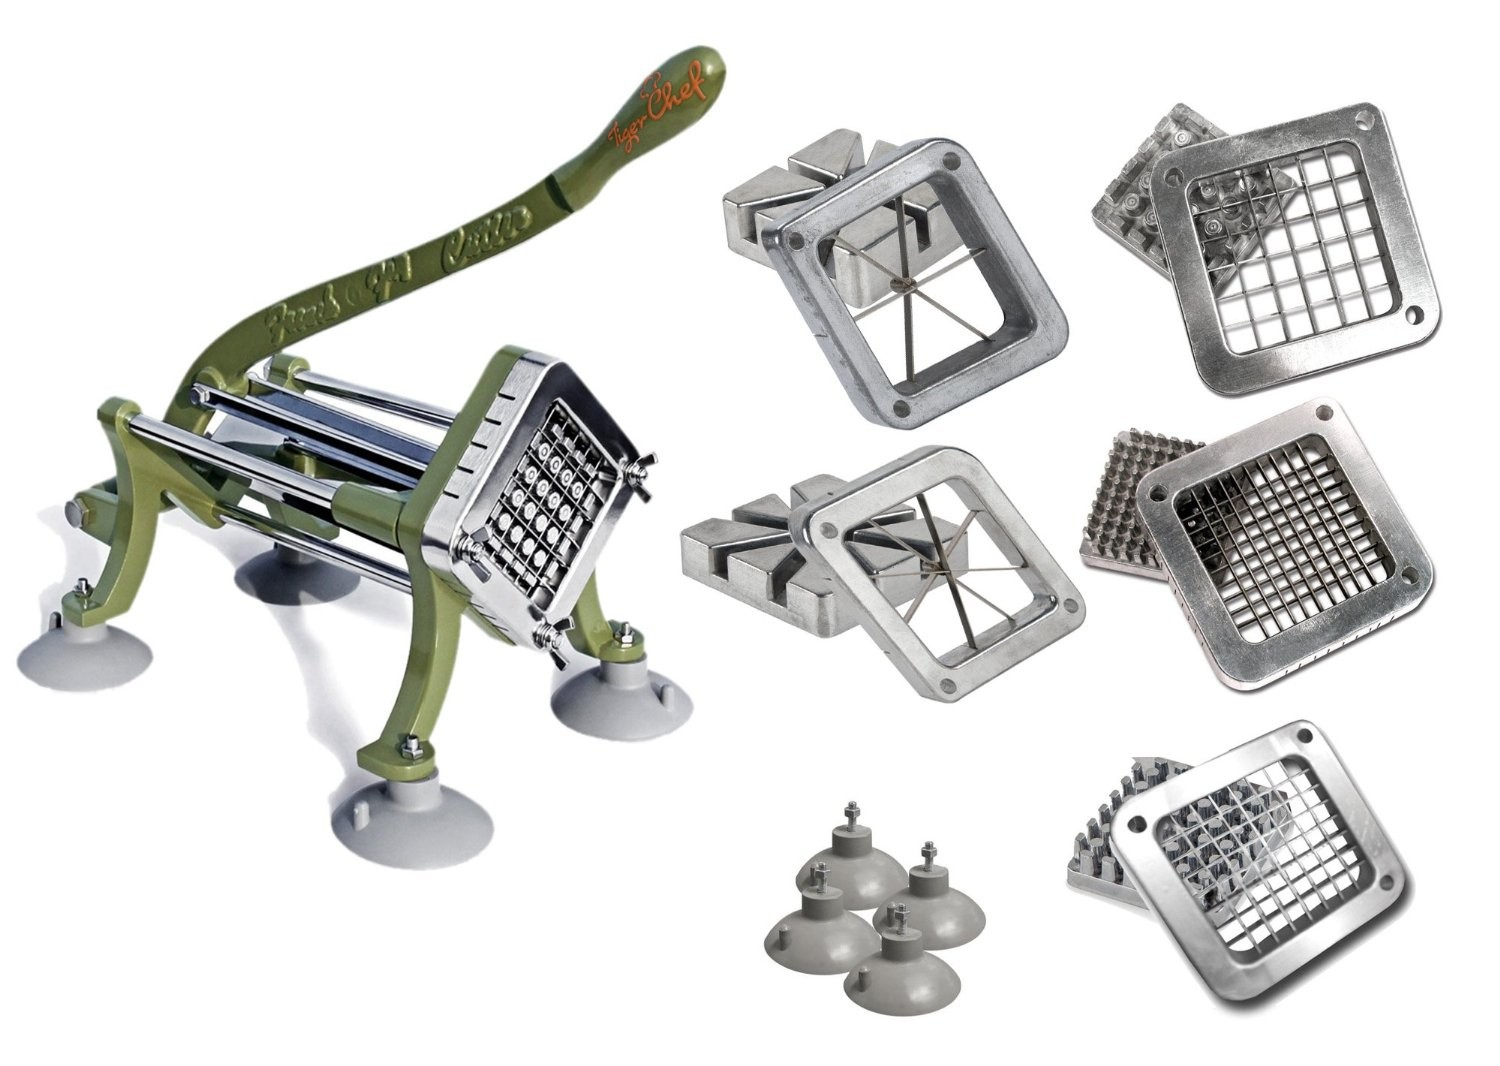 TigerChef Commercial Grade Heavy Duty French Fry Cutter Set